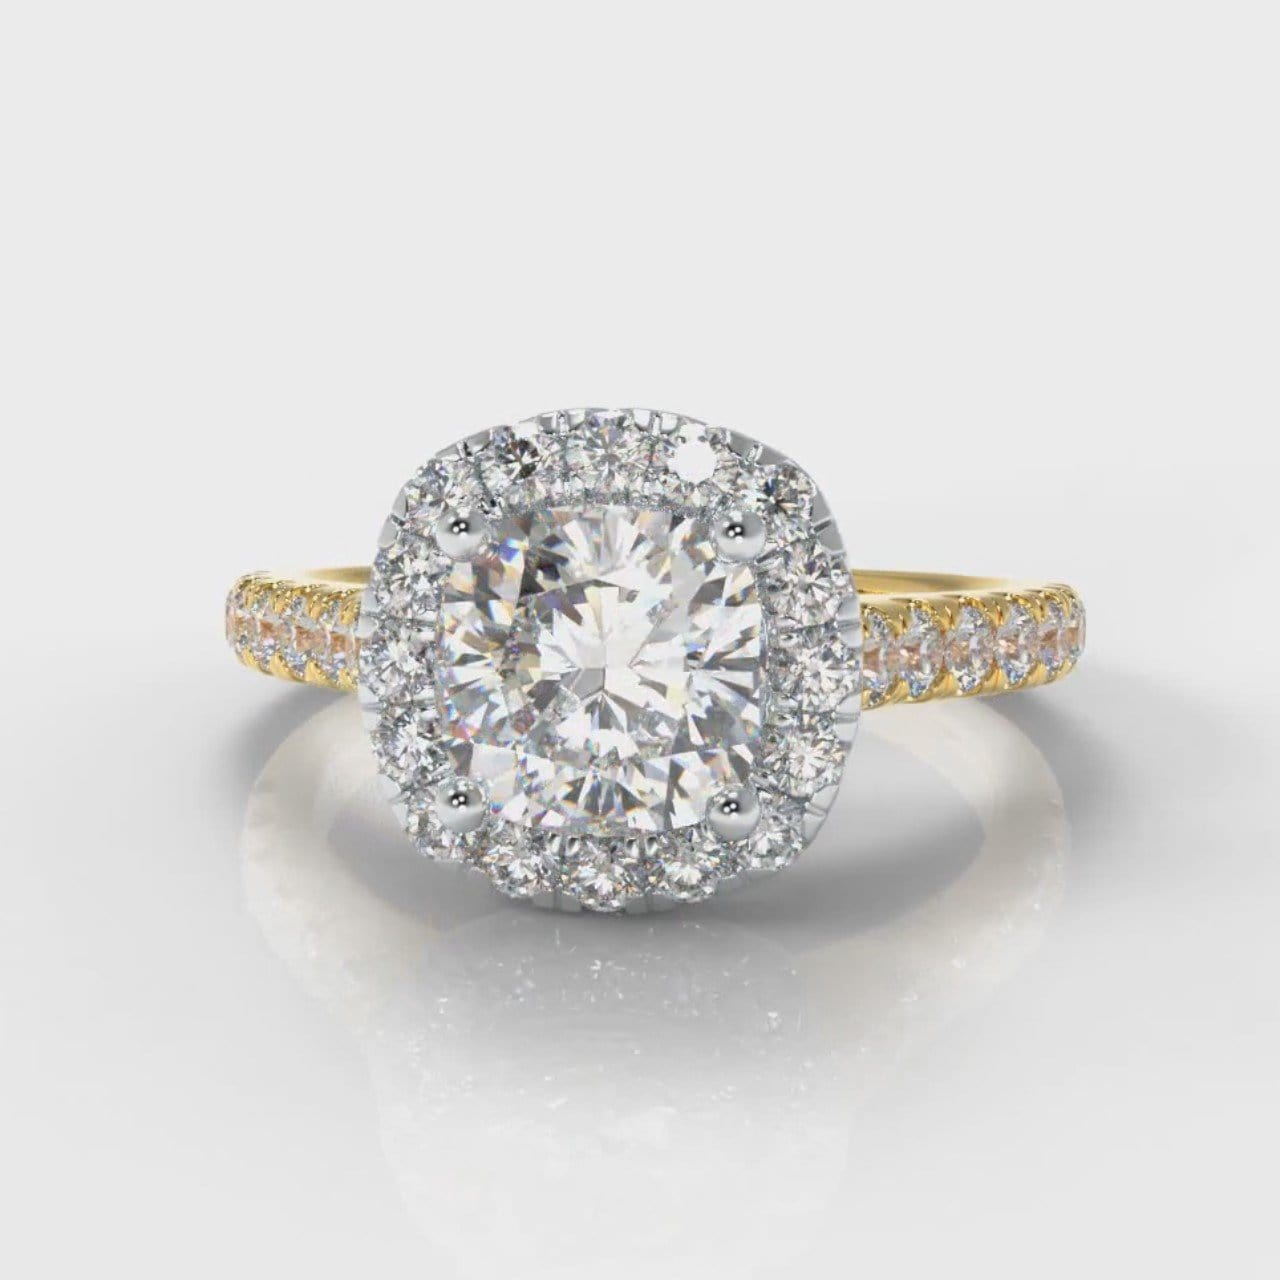 Micropavé Cushion Cut Diamond Halo Engagement Ring - Two Tone Yellow Gold